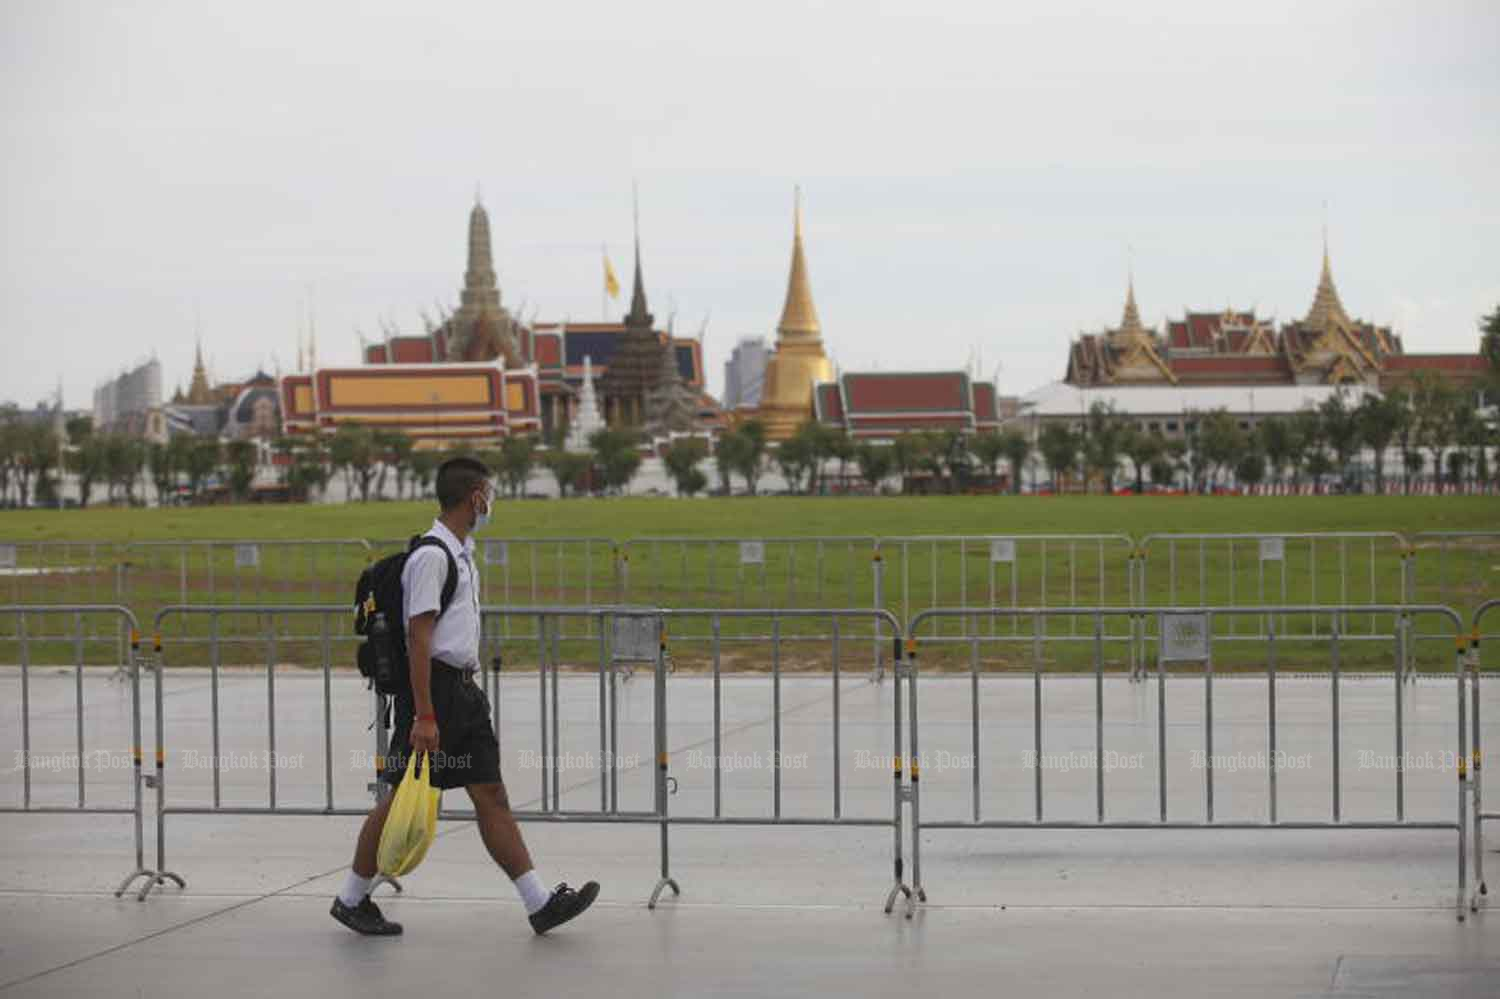 A student walks past Sanam Luang, with the Grand Palace in the background, in Bangkok on Wednesday, when Thailand logged no new Covid-19 cases. (Photo: Nutthawat Wicheanbut)